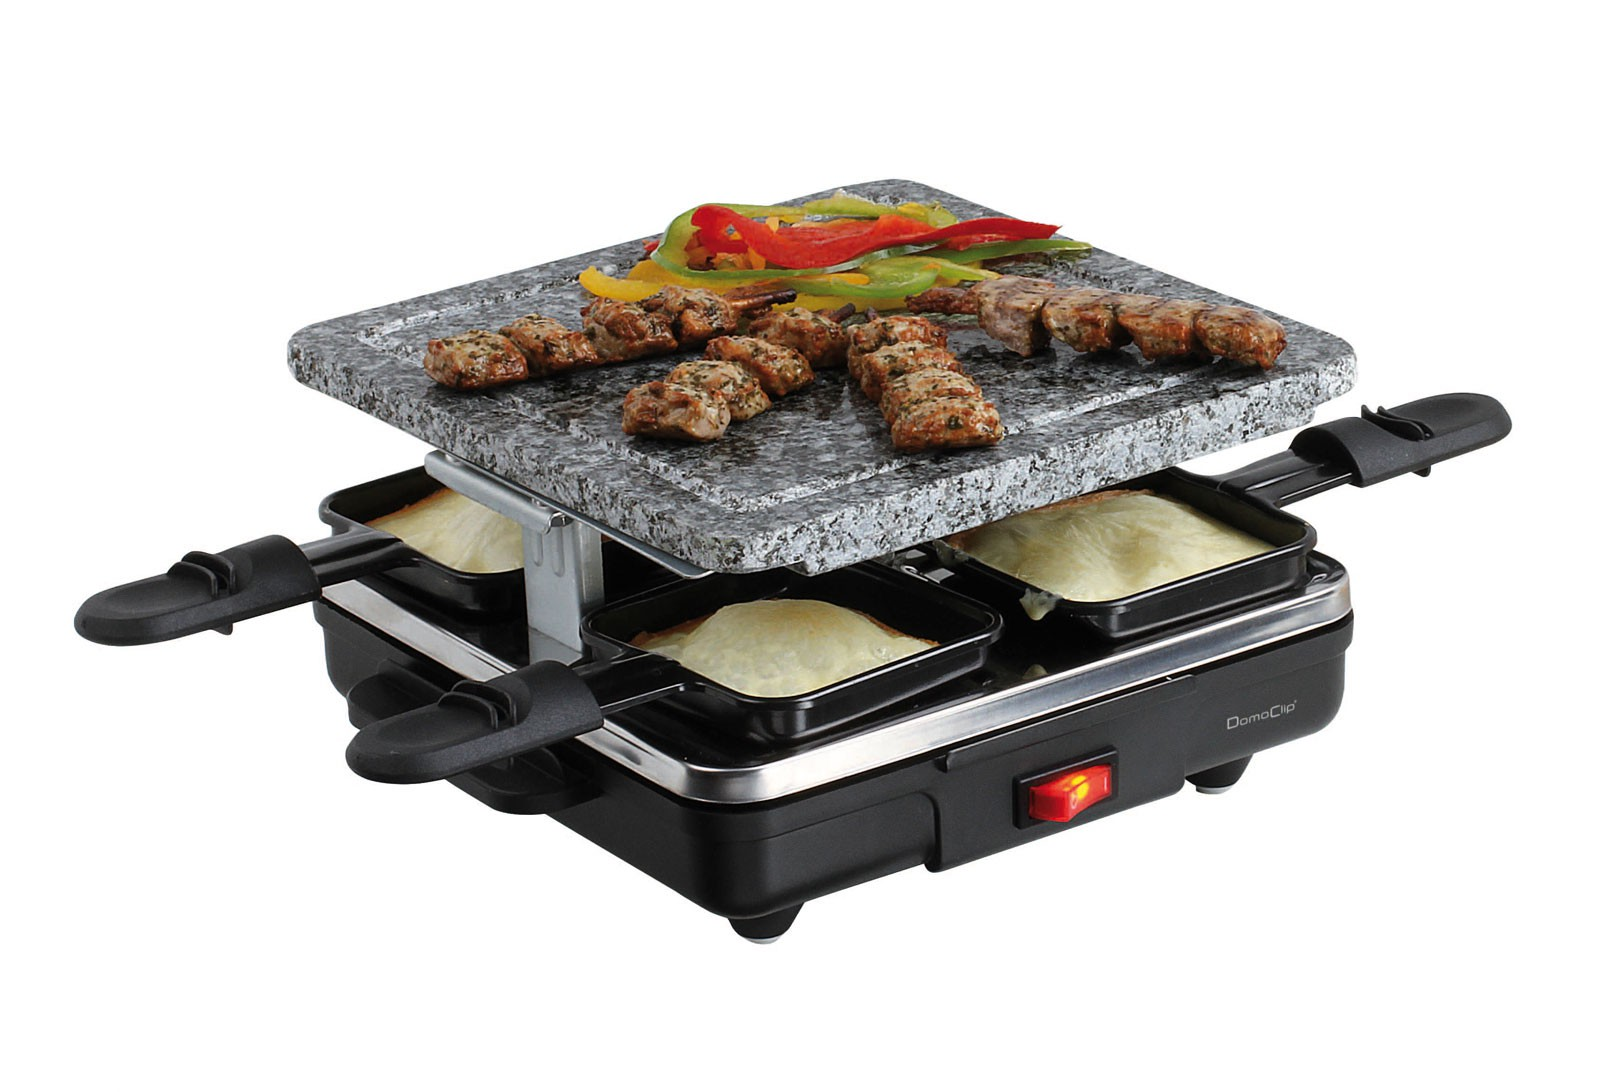 raclette hei er stein 4 pf nnchen domoclip doc162 raclette ger t party grill ebay. Black Bedroom Furniture Sets. Home Design Ideas